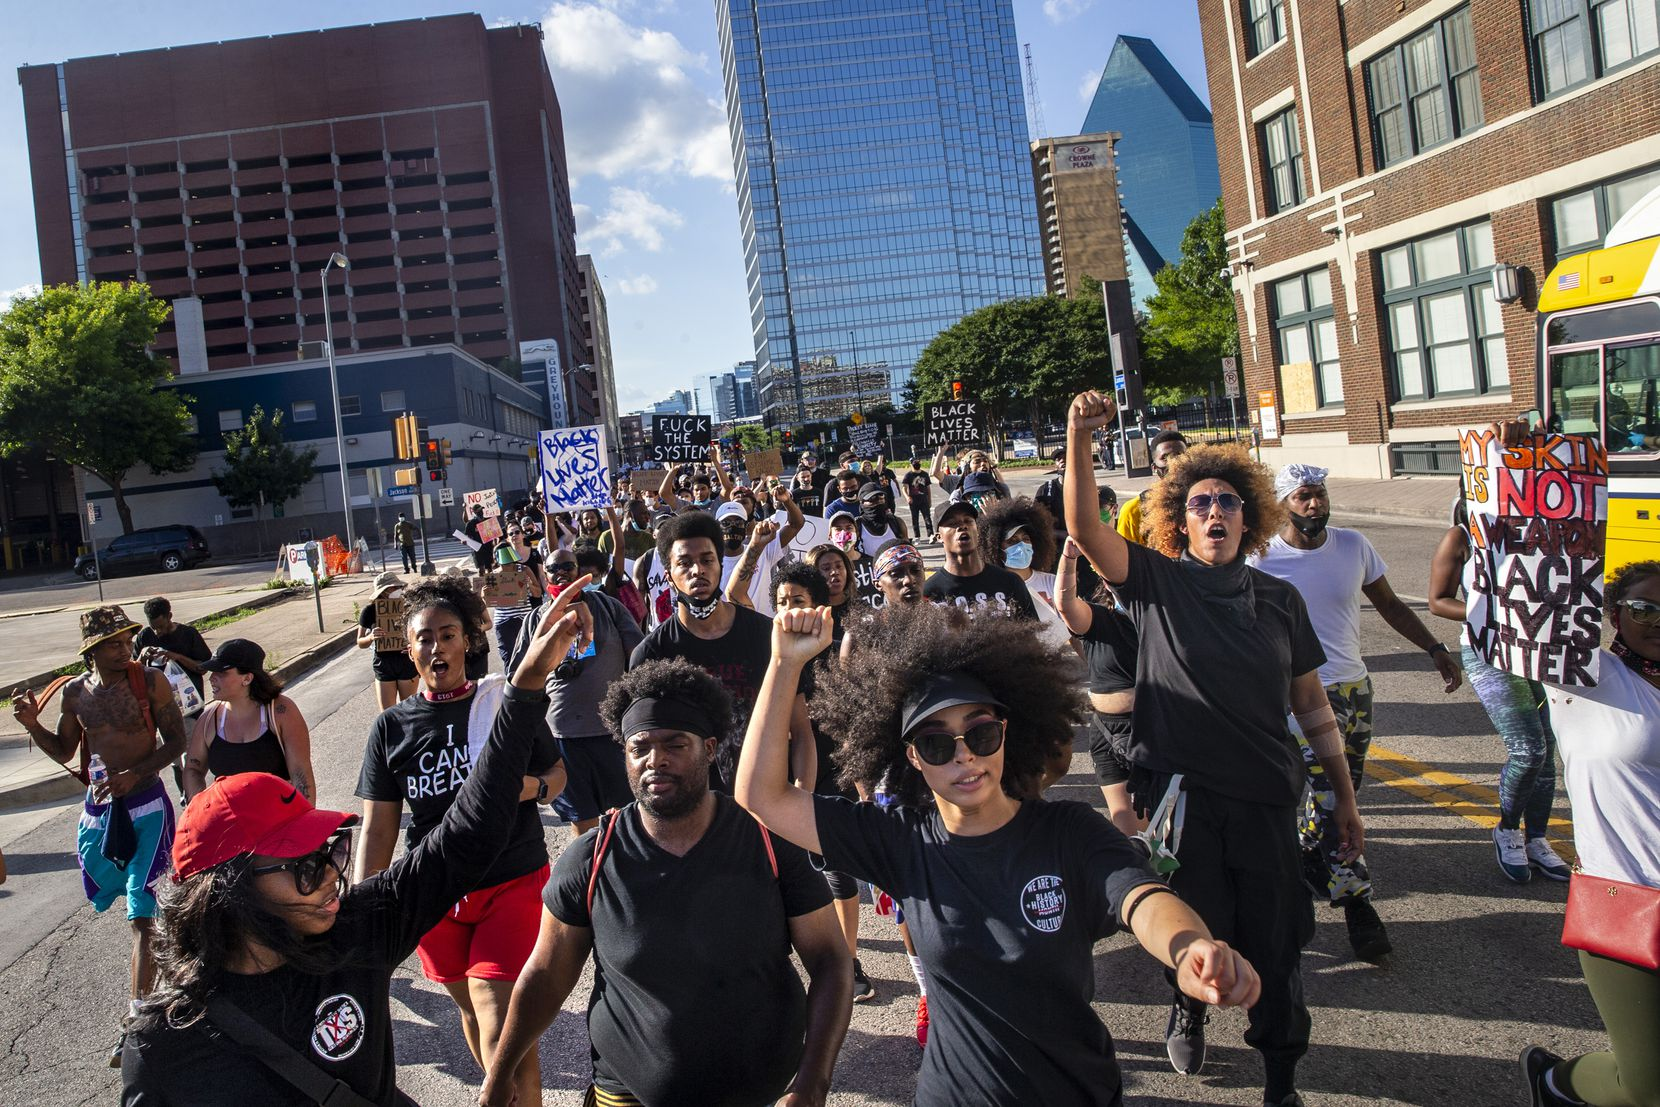 Tierra Jenae Giles (center) leads protesters as they march in a demonstration denouncing police brutality and systemic racism in Dallas on Thursday.